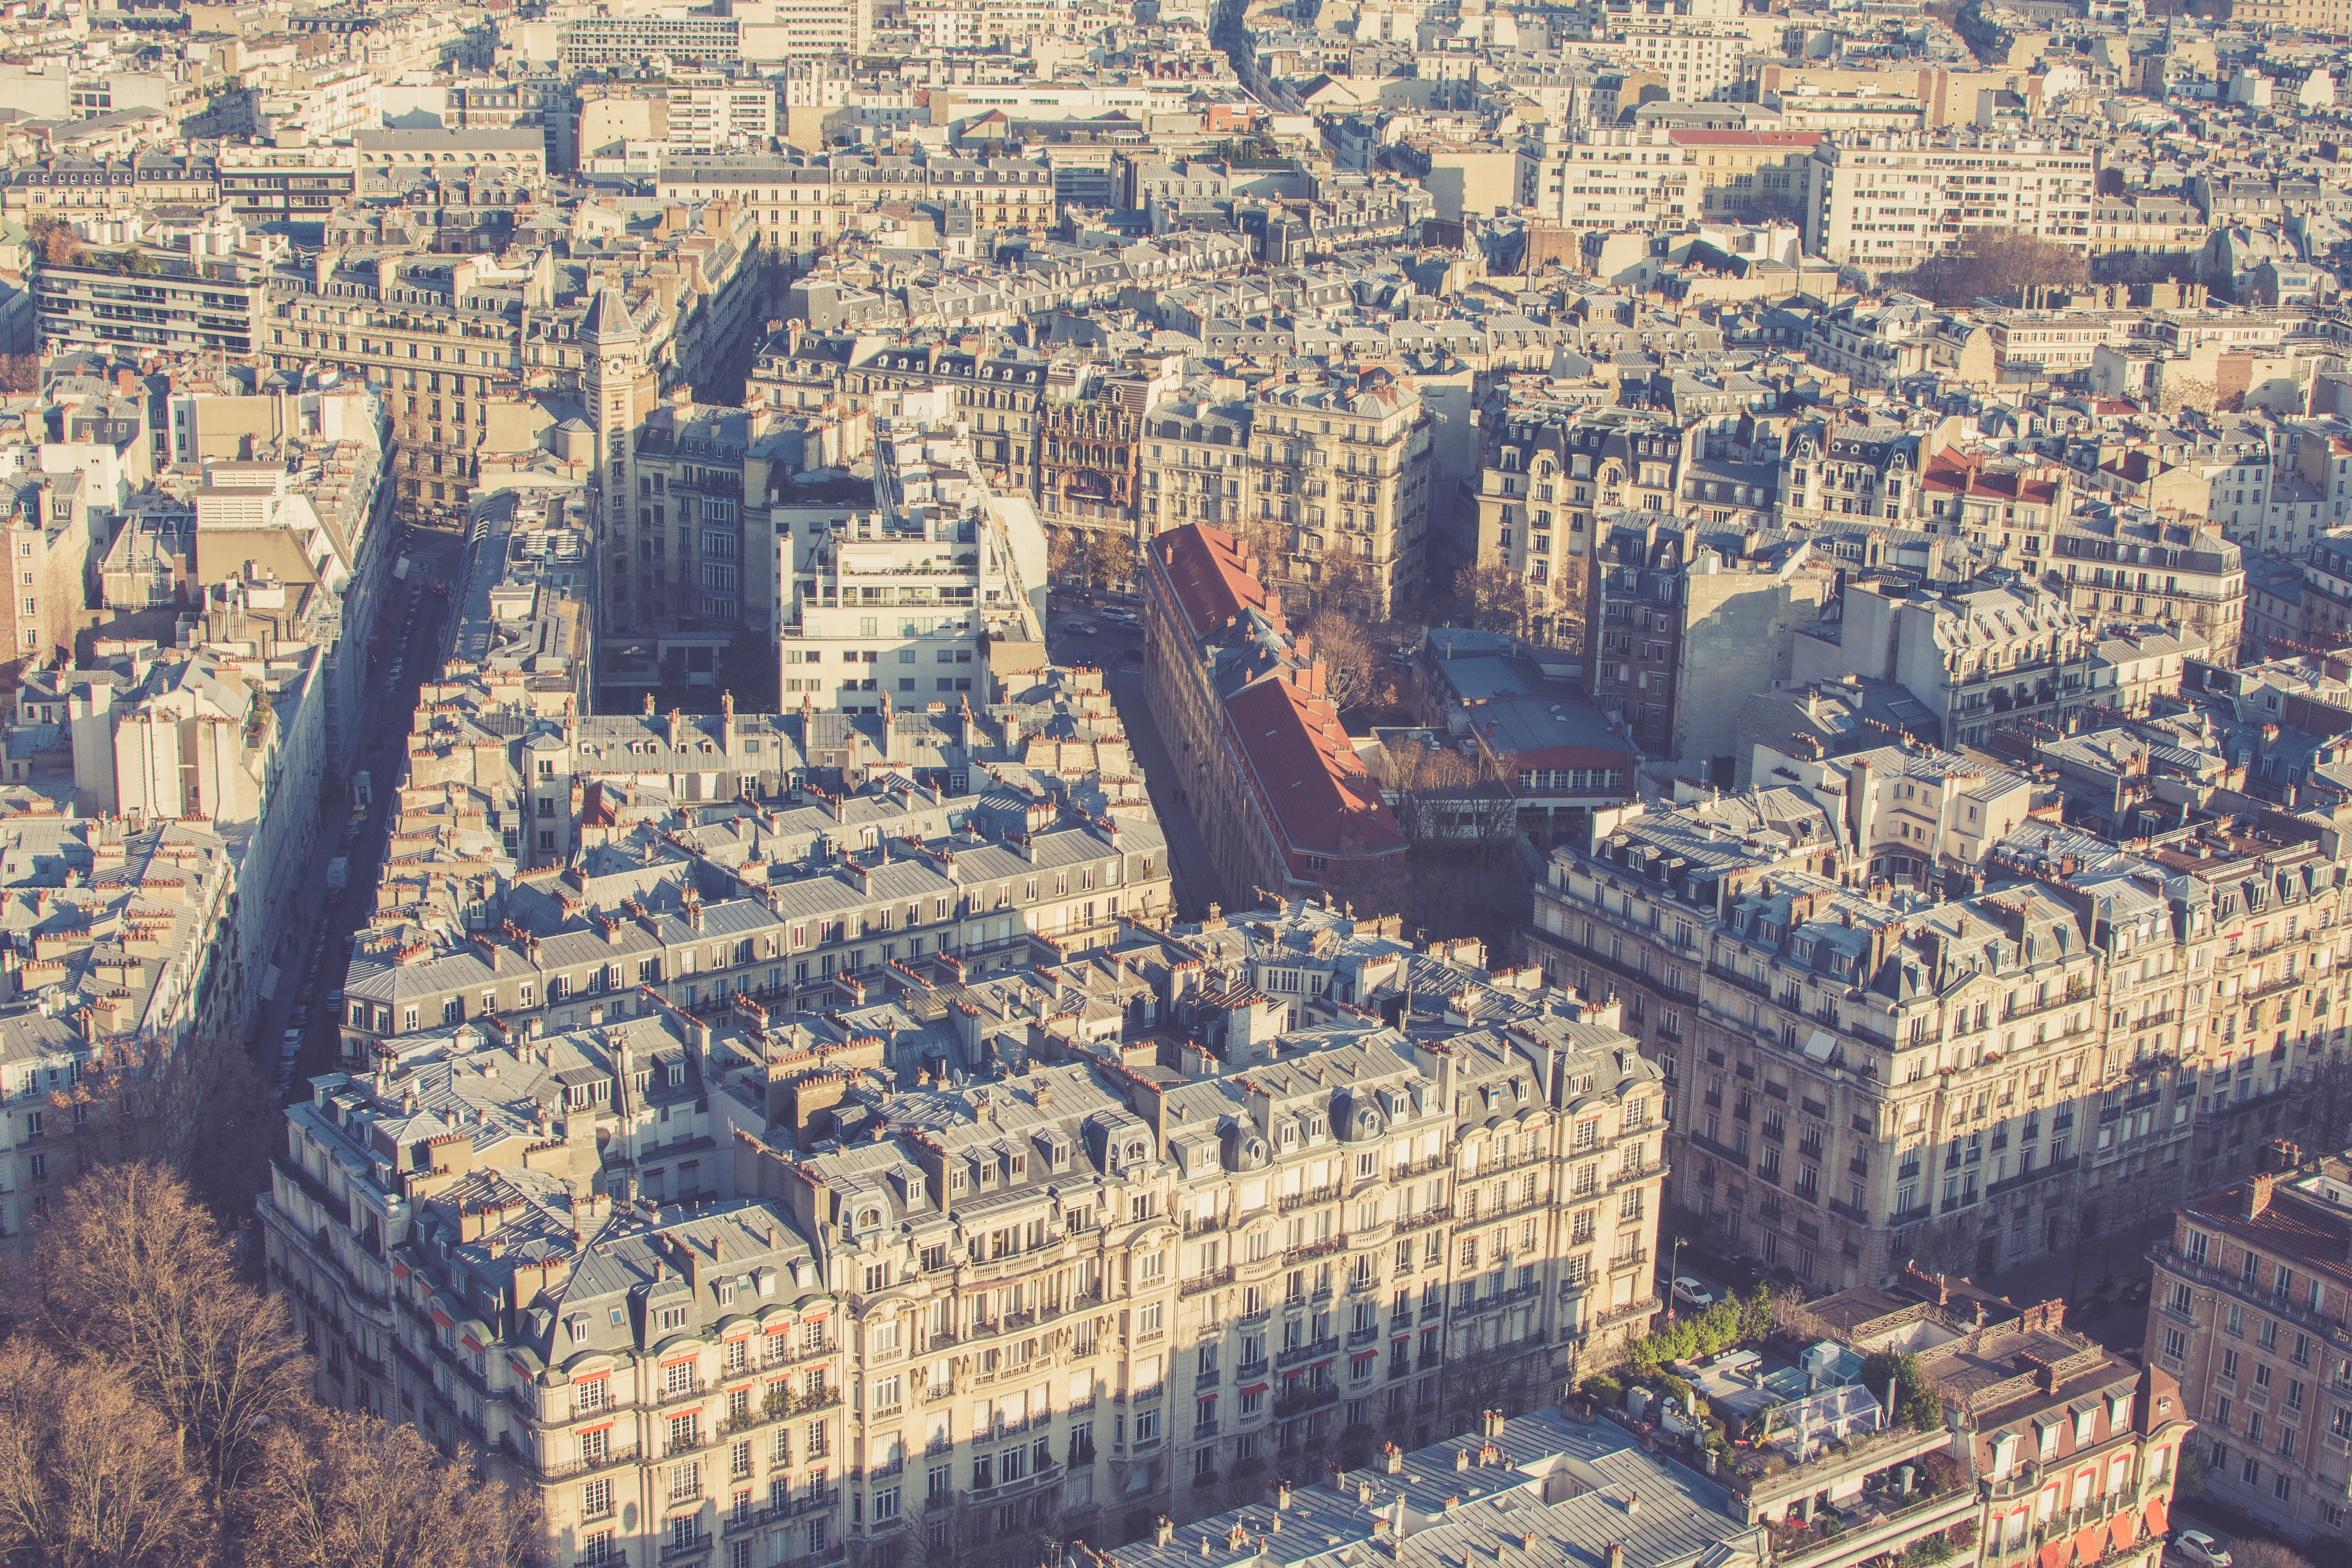 A drone shot of Paris buildings with sepia tone